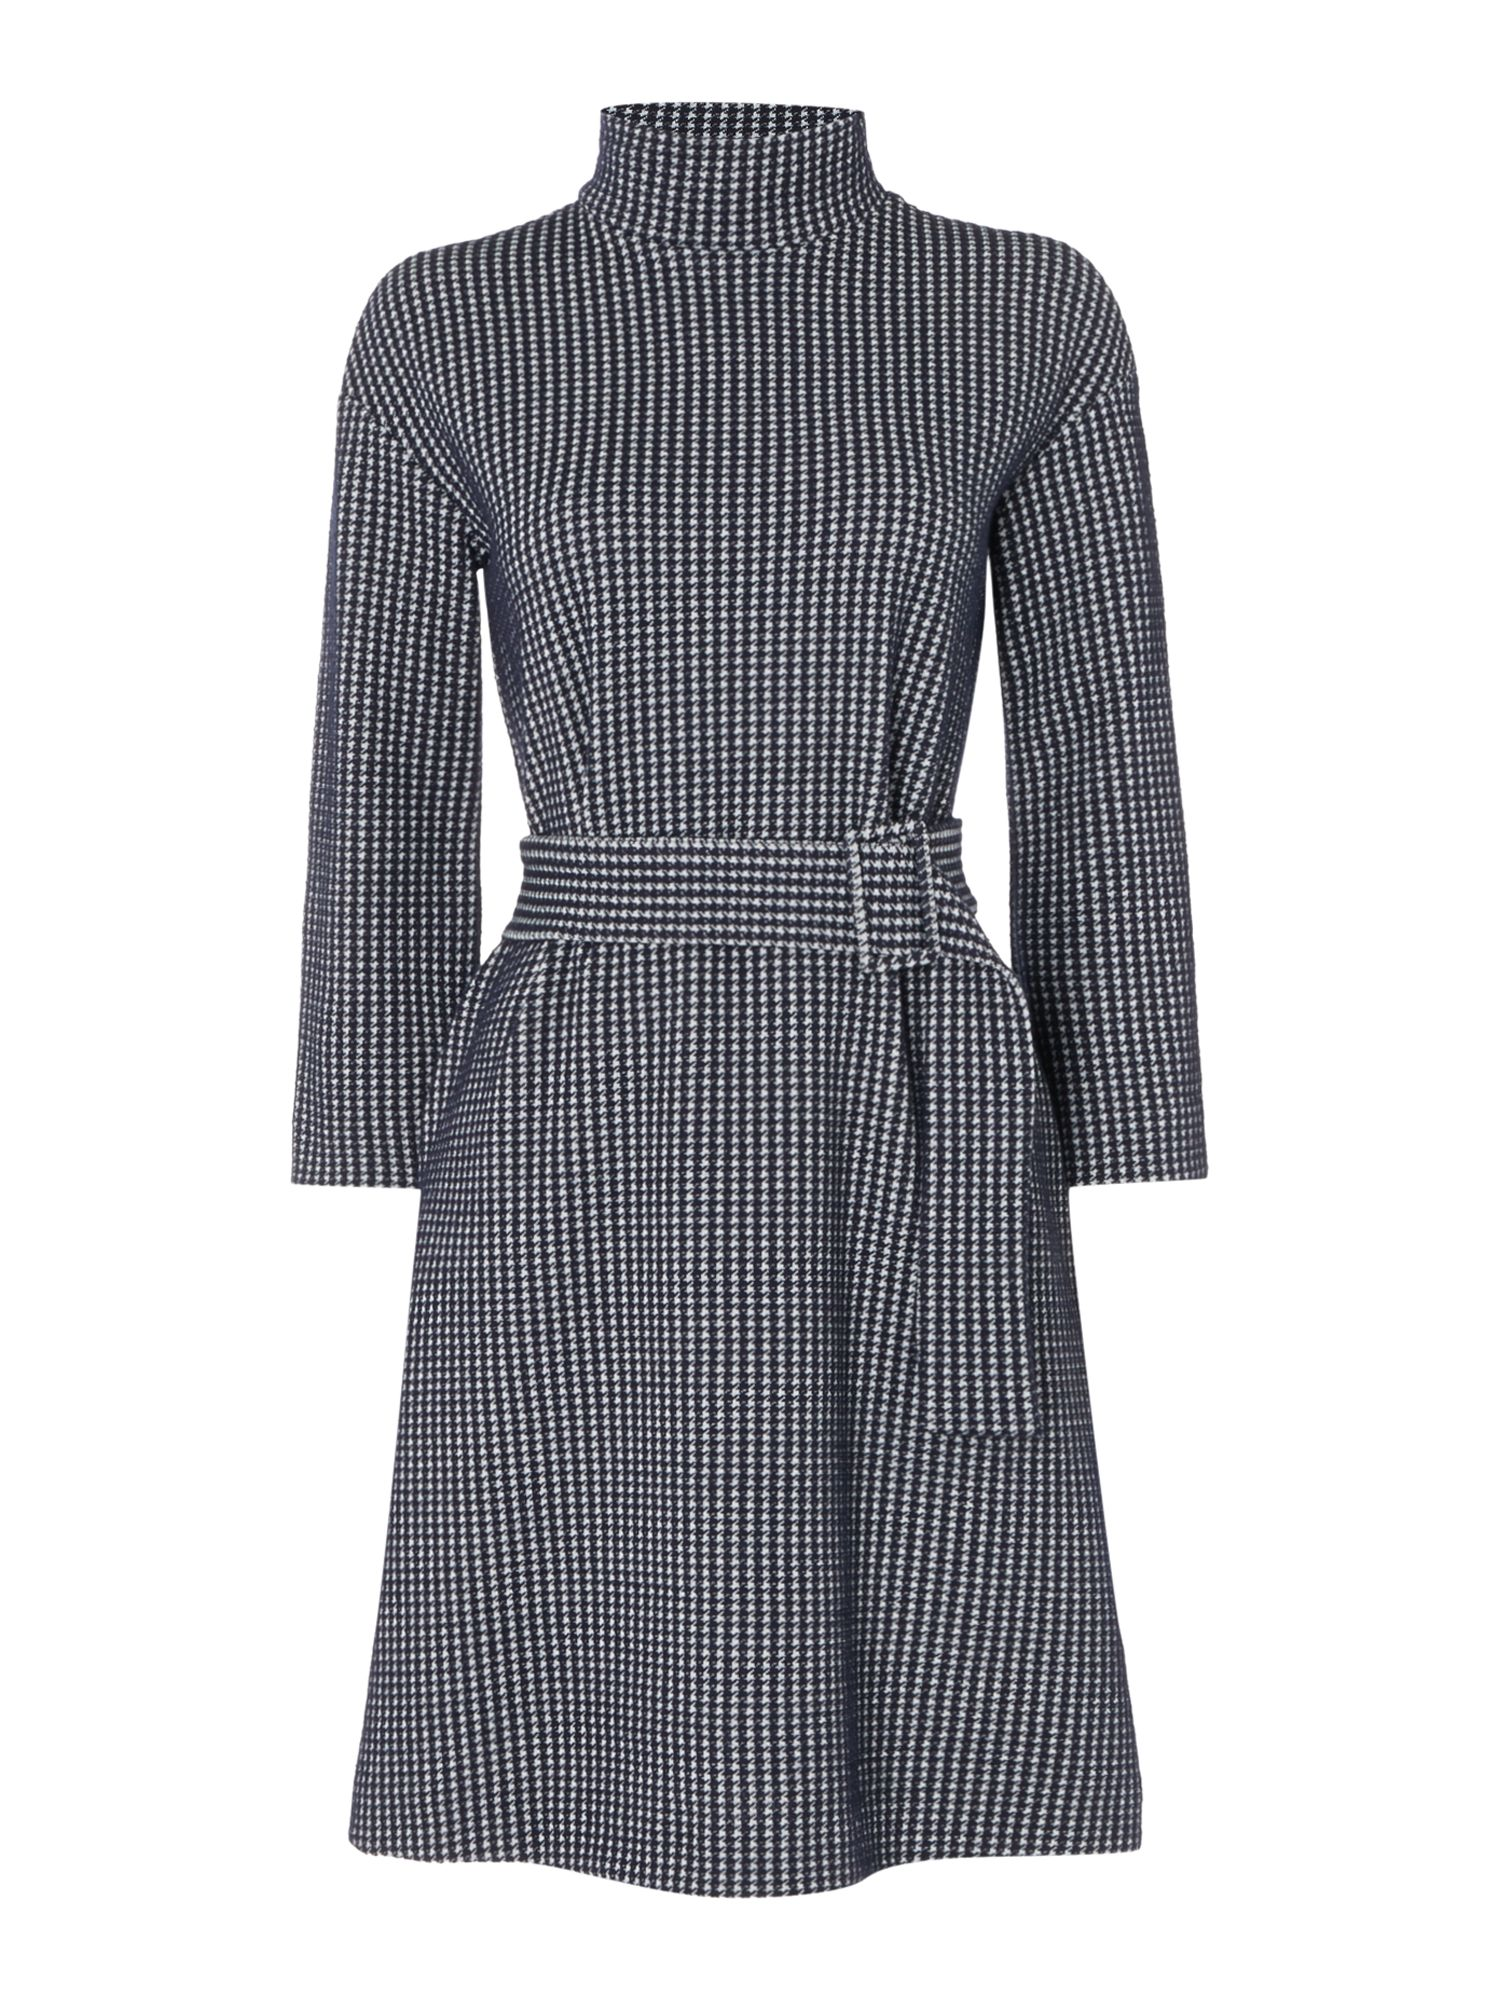 Marella Effige houndstooth dress, Midnight